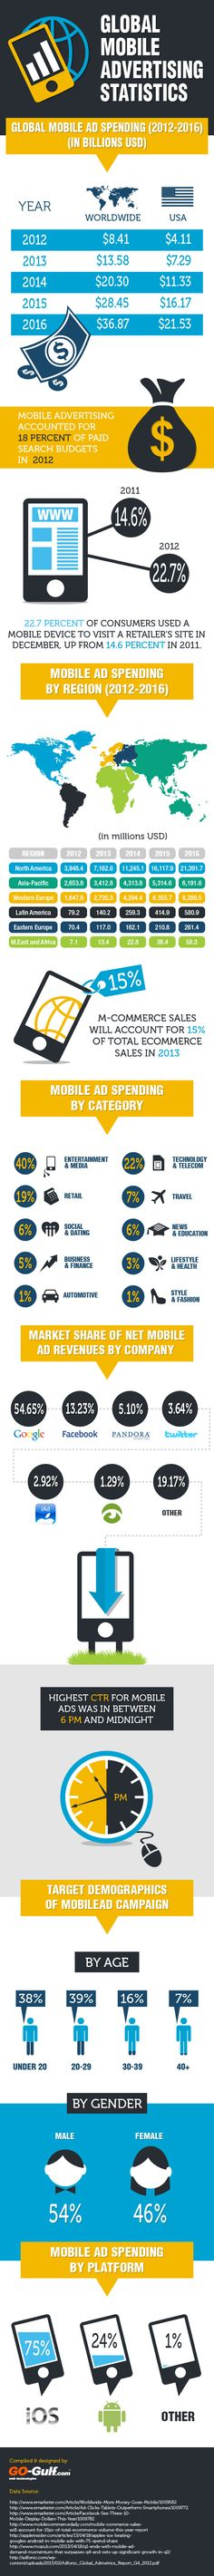 Global Mobile Advertising Stats